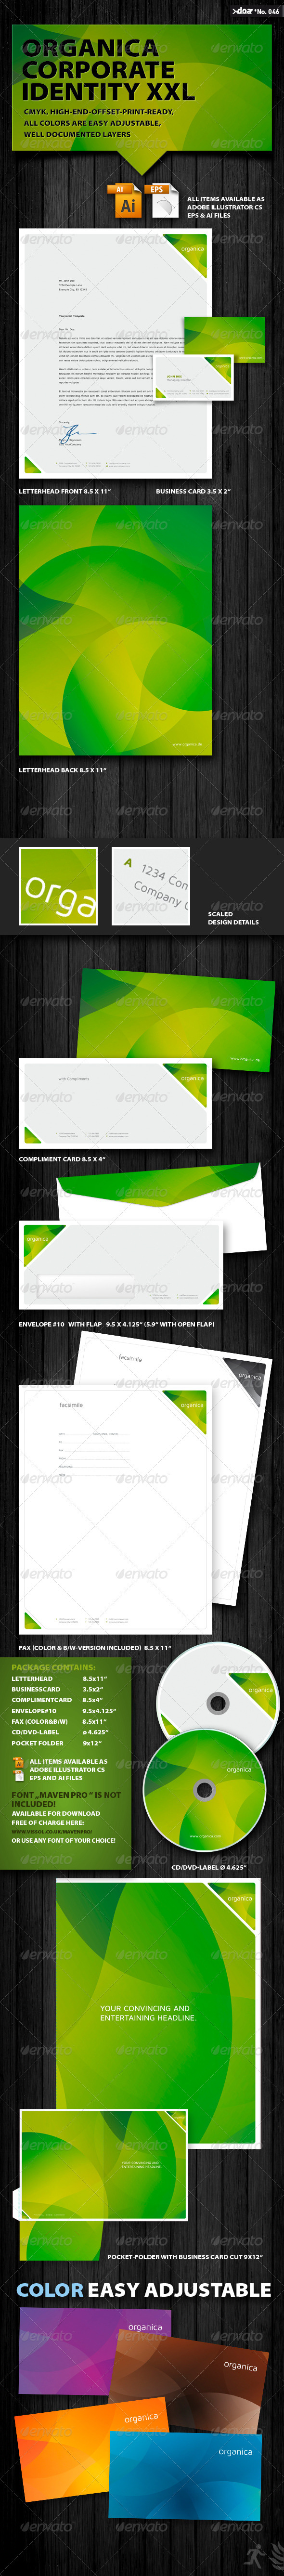 Organica Corporate Identity XXL - Stationery Print Templates